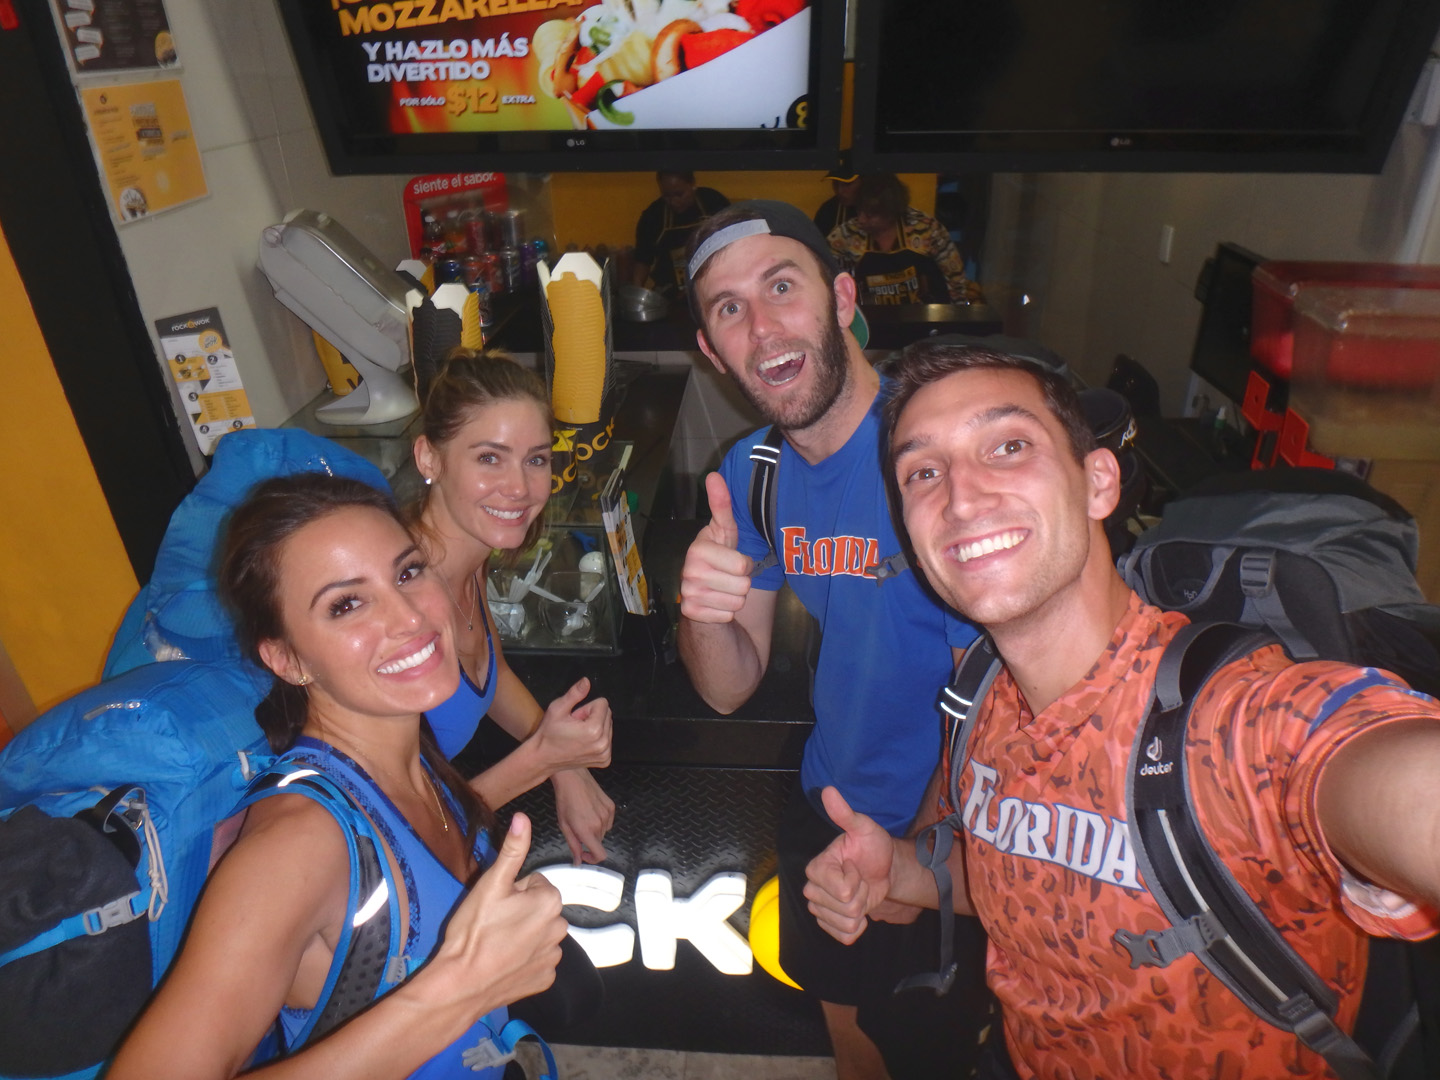 Brittany, Jessica, Brodie, and Kurt gave four thumbs up from Mexico.